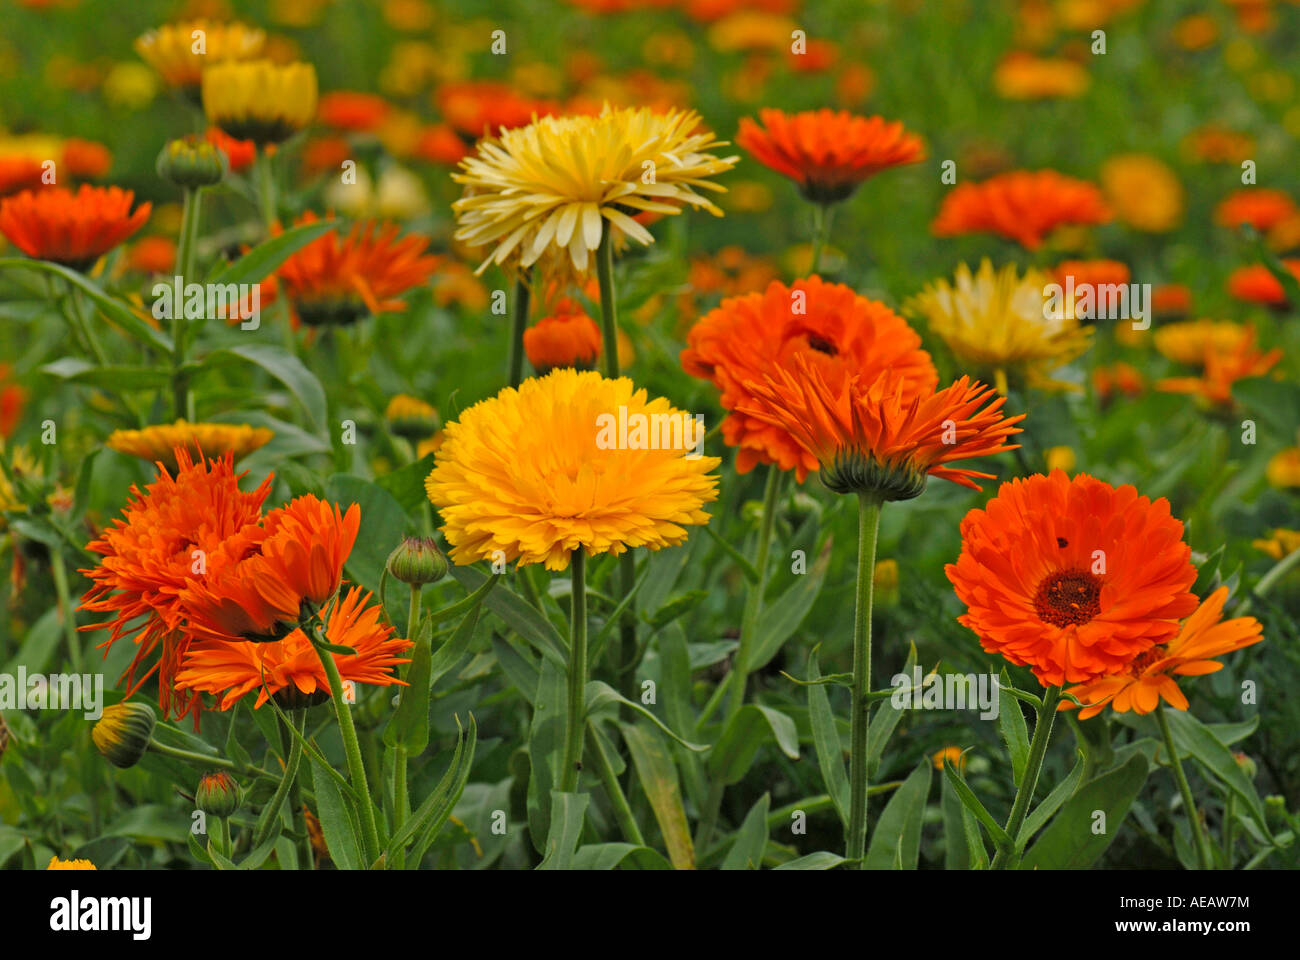 pot marigold english marigold calendula officinalis flowers stock photo royalty free image. Black Bedroom Furniture Sets. Home Design Ideas